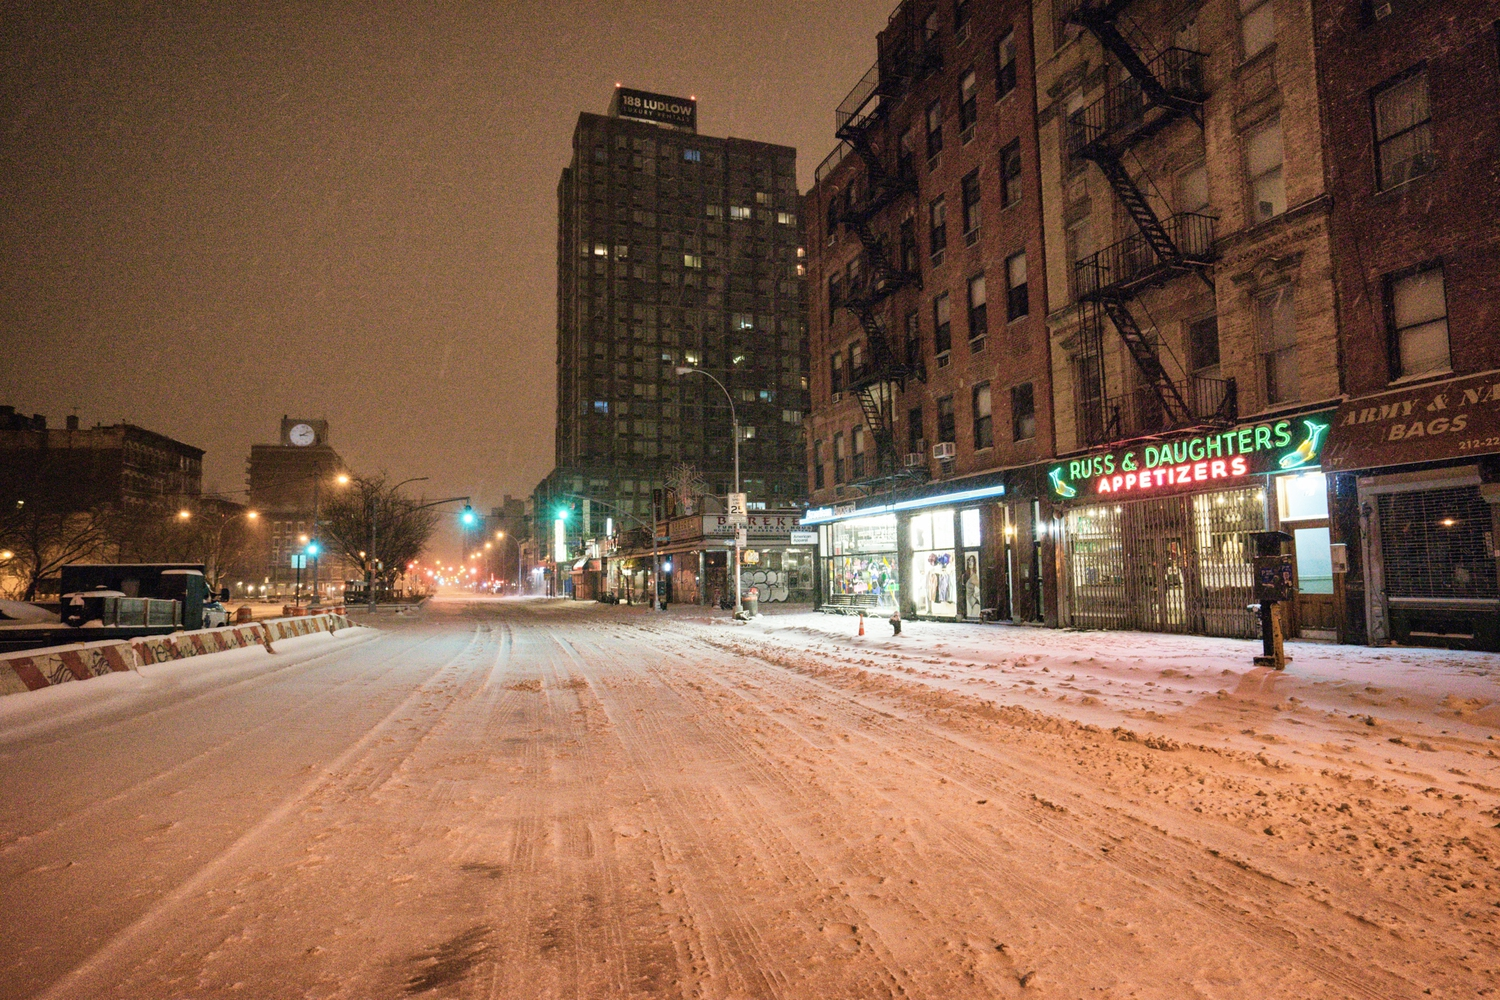 "New York City - Snow - Winter Storm Juno - Empty Houston Street | Juno: The first snowstorm of 2015 in New York City.  ---  (Note: My <a href=""http://www.amazon.com/gp/product/1440339589/ref=as_li_tl?ie=UTF8&camp=1789&creative=9325&creativeASIN=1440339589&linkCode=as2&tag=nyththle0e-20&linkId=ER6GYT5FRYNMEPLF"" rel=""nofollow"">New York photography book</a> released worldwide in stores/online recently and has photos similar to this  [full info below])  ---  I have been photographing New York City during snowstorms at night for the past 5 years. When it comes to experiencing <a href=""http://nythroughthelens.com/tagged/snow"" rel=""nofollow"">New York City in the snow</a>, I relish the challenge. The more gusty, snowy, and brutal the storm, the more of a chance that I will be out in it traipsing around New York City with my cameras in tow.  When I heard that the MTA was suspending all transit service (and most vehicles) at 11 pm, I made the decision to take the train up to the Upper East Side prior to 11 pm to deposit myself up there with the intention of walking from the Upper East Side to Times Square and then walking the several miles back to the Lower East Side (whew!!).  The streets were eerily empty.  Emptier than they are usually at night during snowfall. Since there was a ban on all vehicles aside from snow plows and emergency services, there were practically no cars at all on the streets. Even taxis were banned from the streets!  I walked in the middle of avenues and streets that are usually teeming with cars.  There was an eerie sense of calm.  It was magical.   ---  This is part of a post that I posted to my NYC photography blog. If you are curious enough to look at the photos there, here is the link to the post:  <a href=""http://nythroughthelens.com/post/109291619025/new-york-city-snow-winter-storm-juno-i"" rel=""nofollow"">New York City - Winter Storm Juno</a>   ----  * As mentioned above - My New York City coffee table book that released in stores/online worldwide recently.   Tons of information about my <a href=""http://www.amazon.com/gp/product/1440339589/ref=as_li_tl?ie=UTF8&camp=1789&creative=9325&creativeASIN=1440339589&linkCode=as2&tag=nyththle0e-20&linkId=ER6GYT5FRYNMEPLF"" rel=""nofollow"">New York photography book</a> with sample pages (including where to order and what stores are carrying it) here:  <a href=""http://nythroughthelens.com/post/92873566010/ny-through-the-lens-the-book-i-am-super"" rel=""nofollow"">NY Through The Lens: A New York Coffee Table Book</a> ---   View my New York City photography at my website <a href=""http://nythroughthelens.com/"" rel=""nofollow"">NY Through The Lens</a>.  View my Travel photography at my travel blog: <a href=""http://travelinglens.me/"" rel=""nofollow"">Traveling Lens</a>.  Interested in my work and have questions about PR and media? Check out my:  <a href=""http://nythroughthelens.com/about"" rel=""nofollow"">About Page</a> 